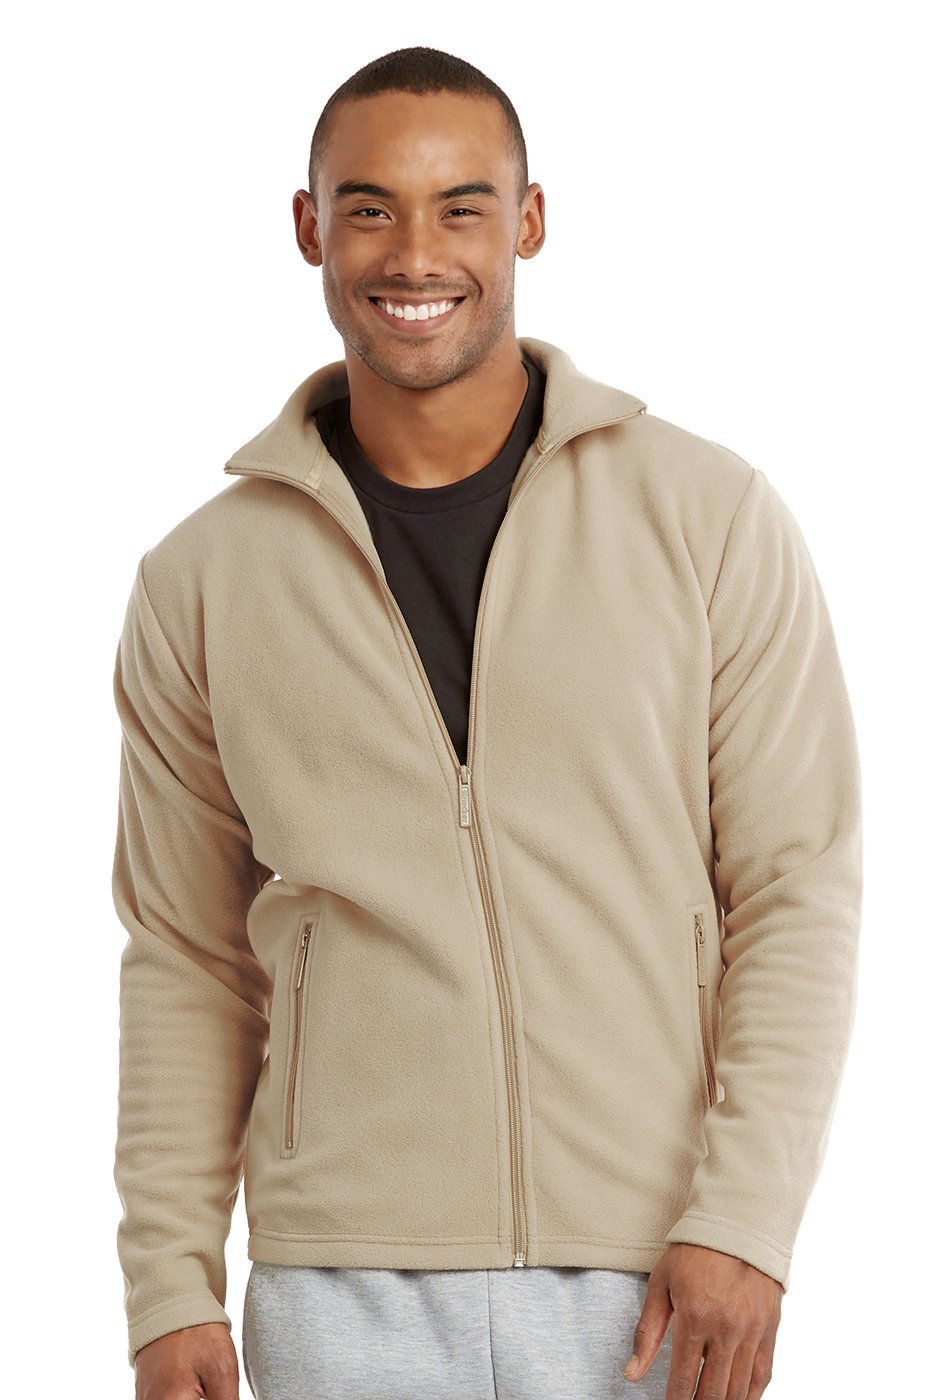 Men's Polar Fleece Zip up Jacket (M, Beige) by Knocker